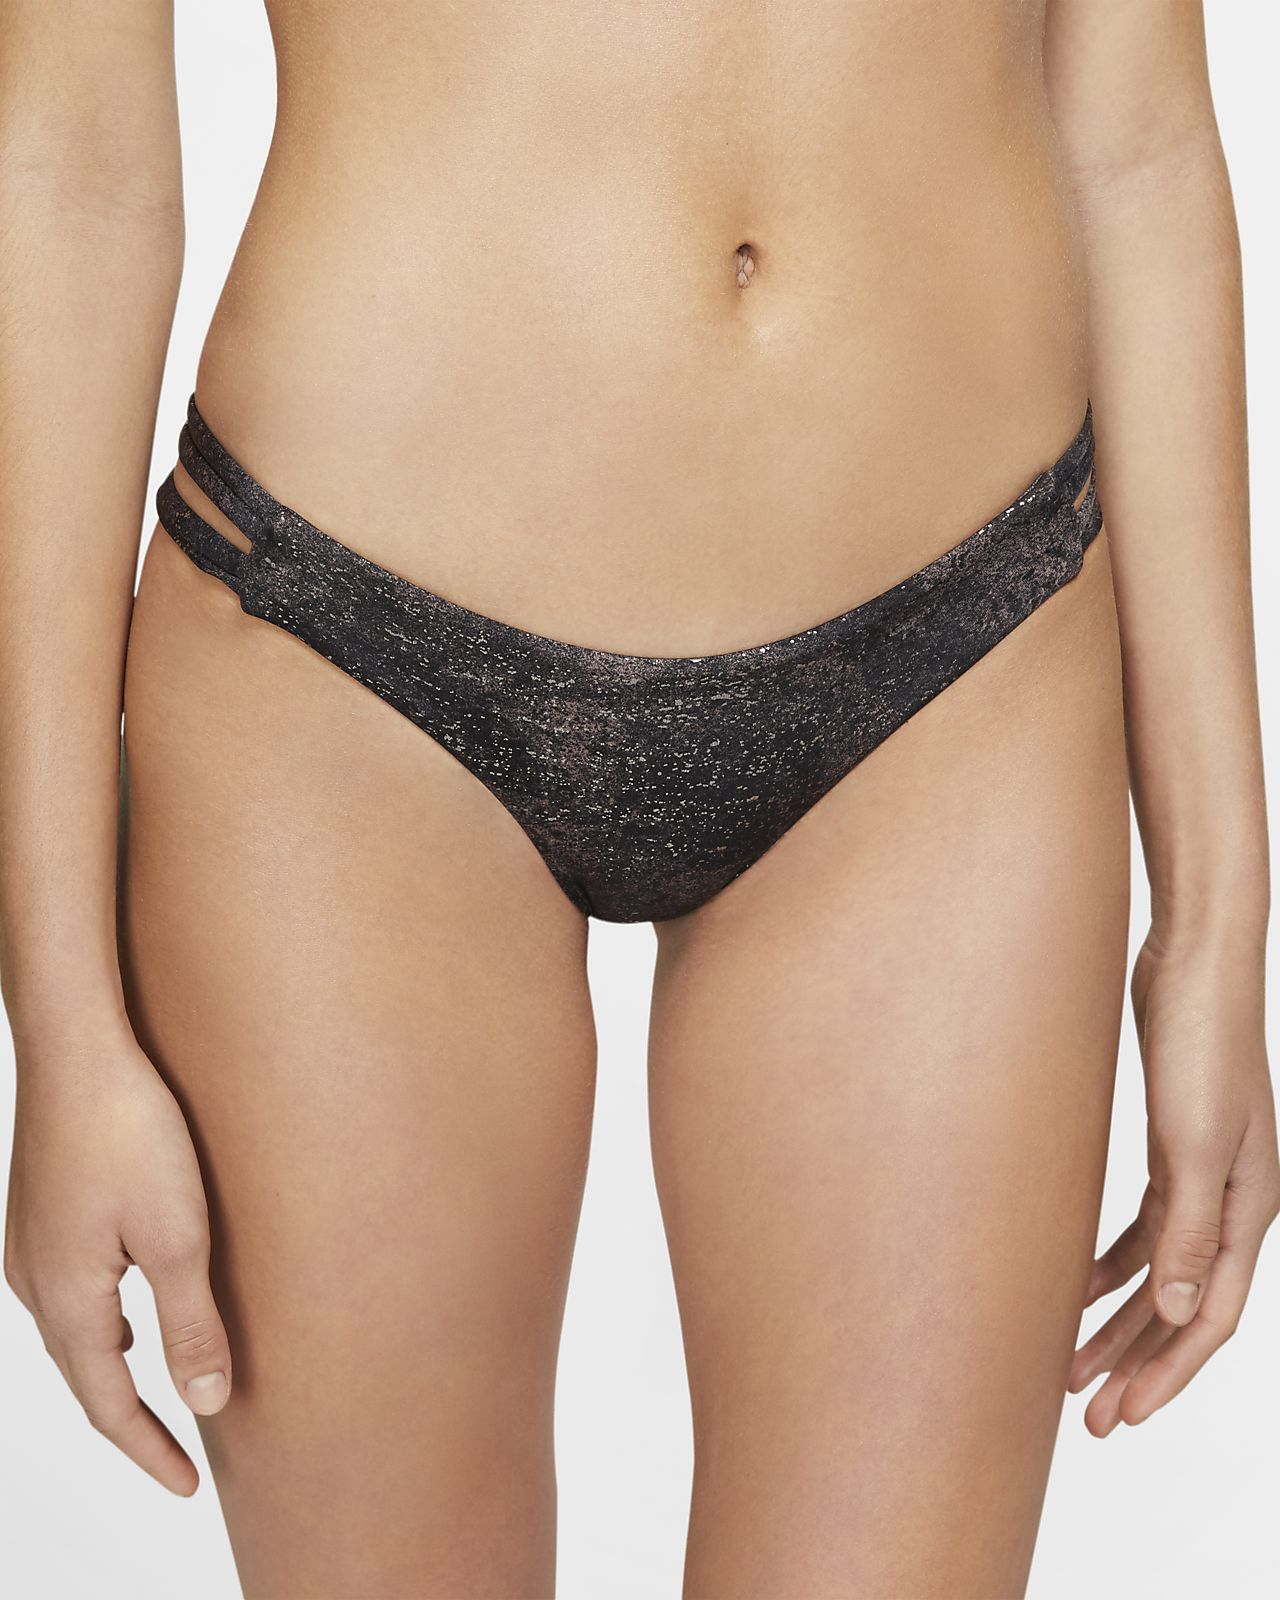 Hurley Quick Dry Max Lustre Women's Surf Bottoms